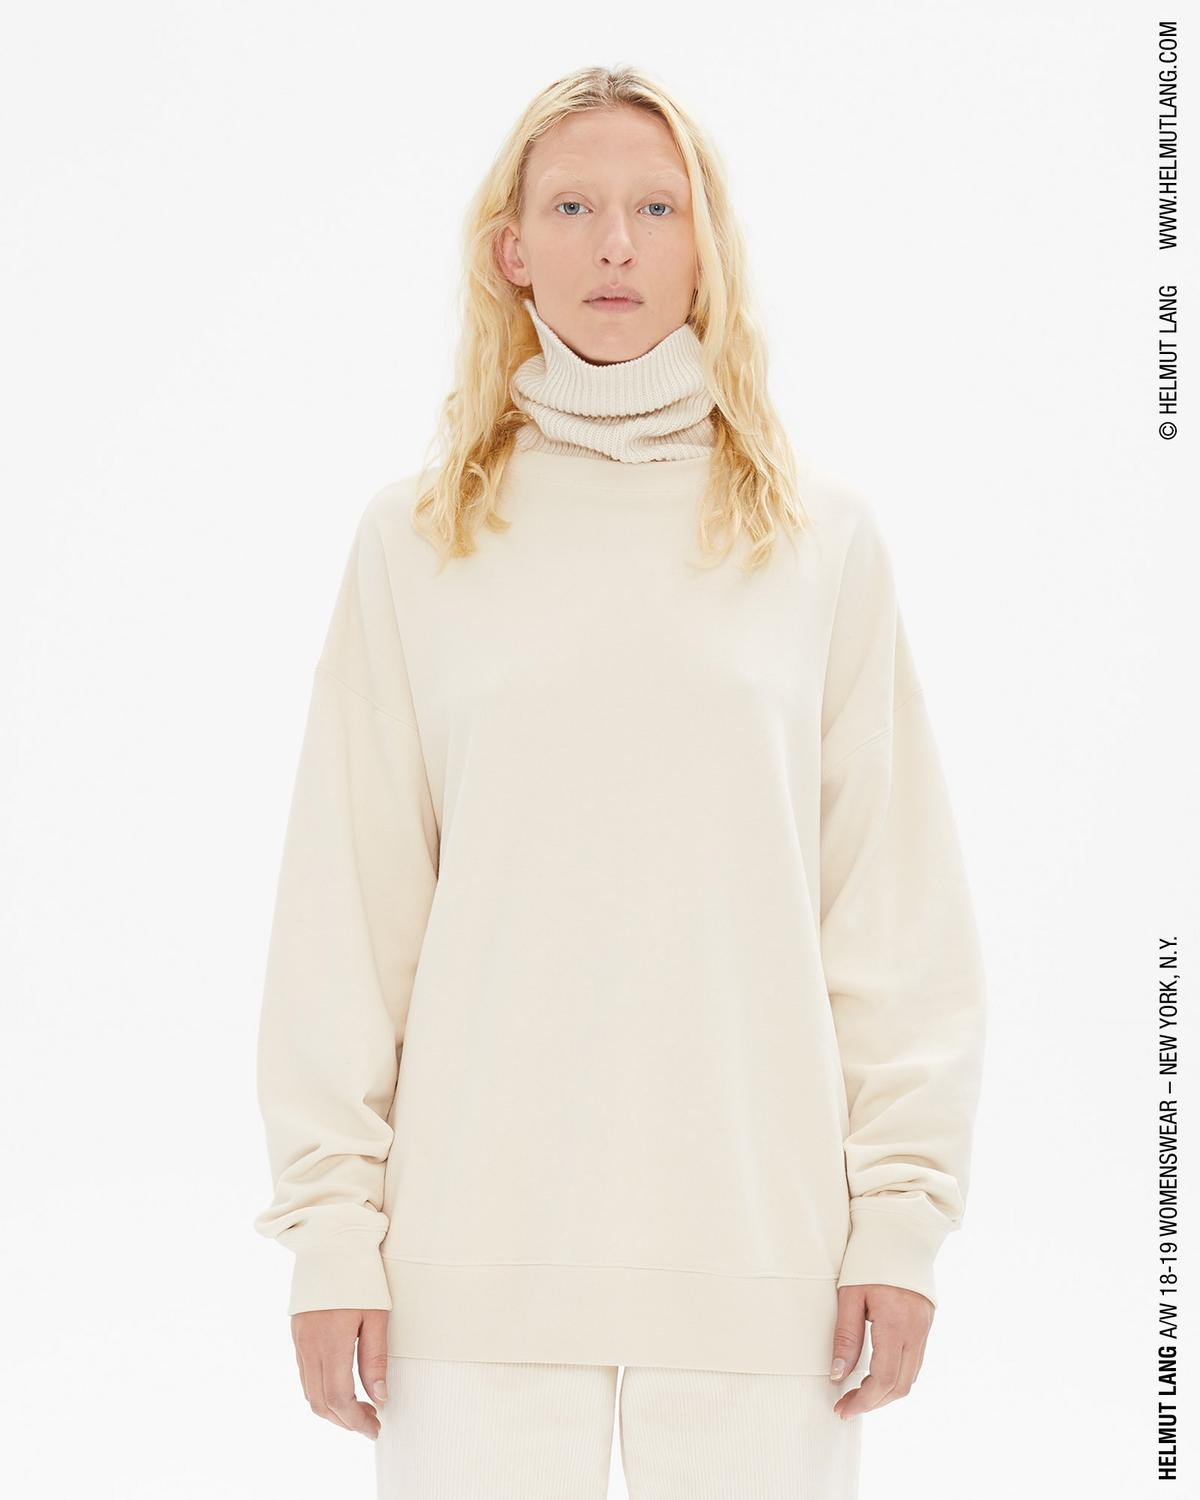 KNIT TURTLENECK SWEATSHIRT